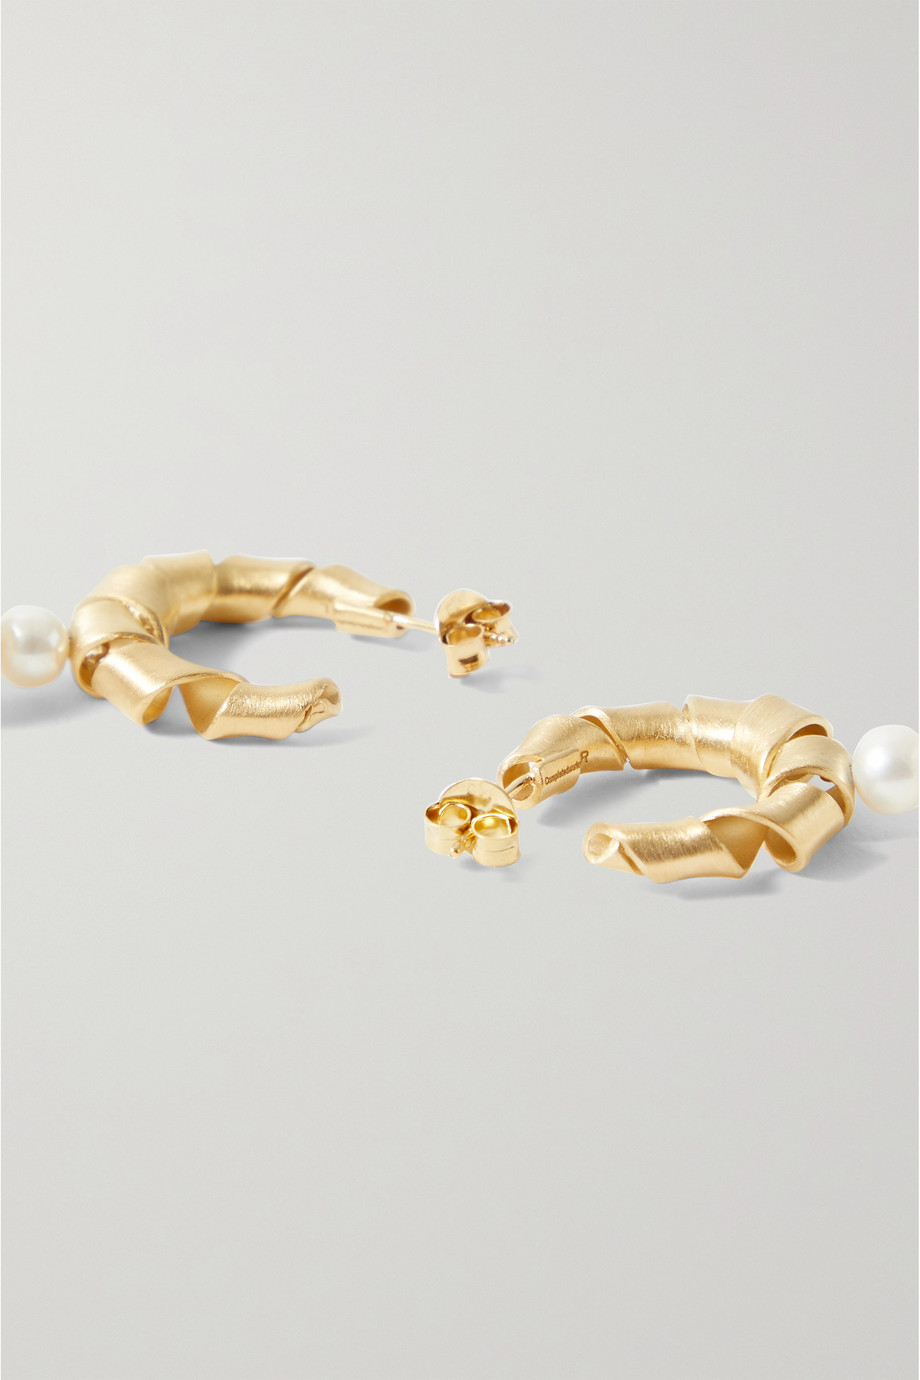 COMPLETEDWORKS Wibble, Wobble gold-plated pearl hoop earrings